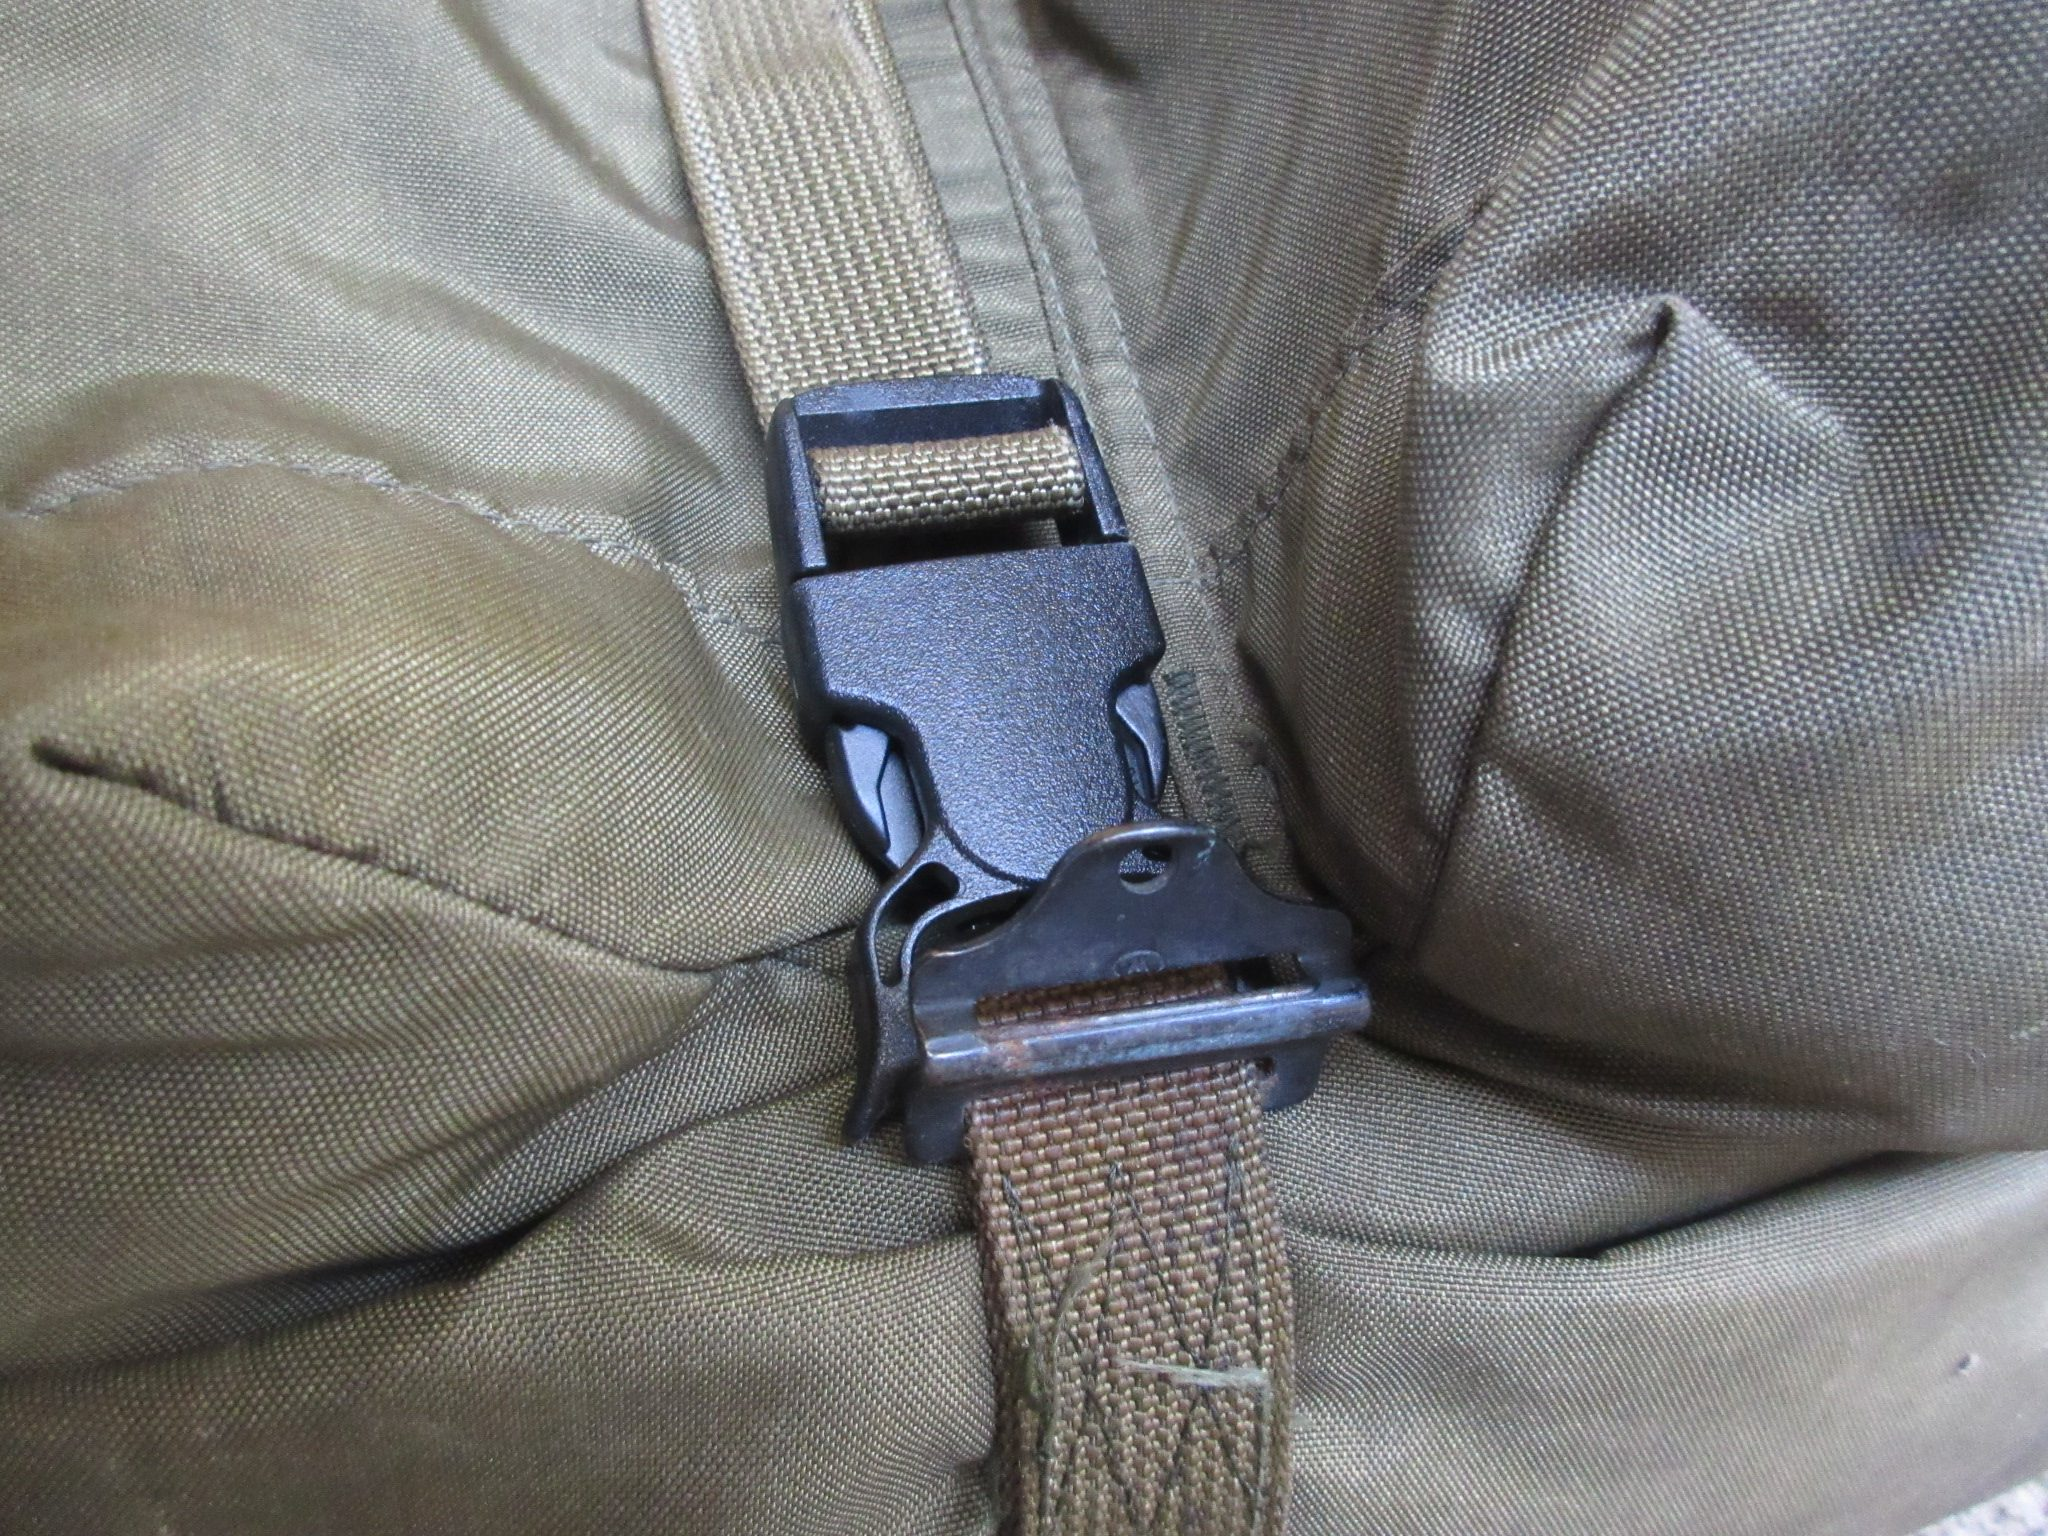 ALICE Quick Disconnect Strap Buckles